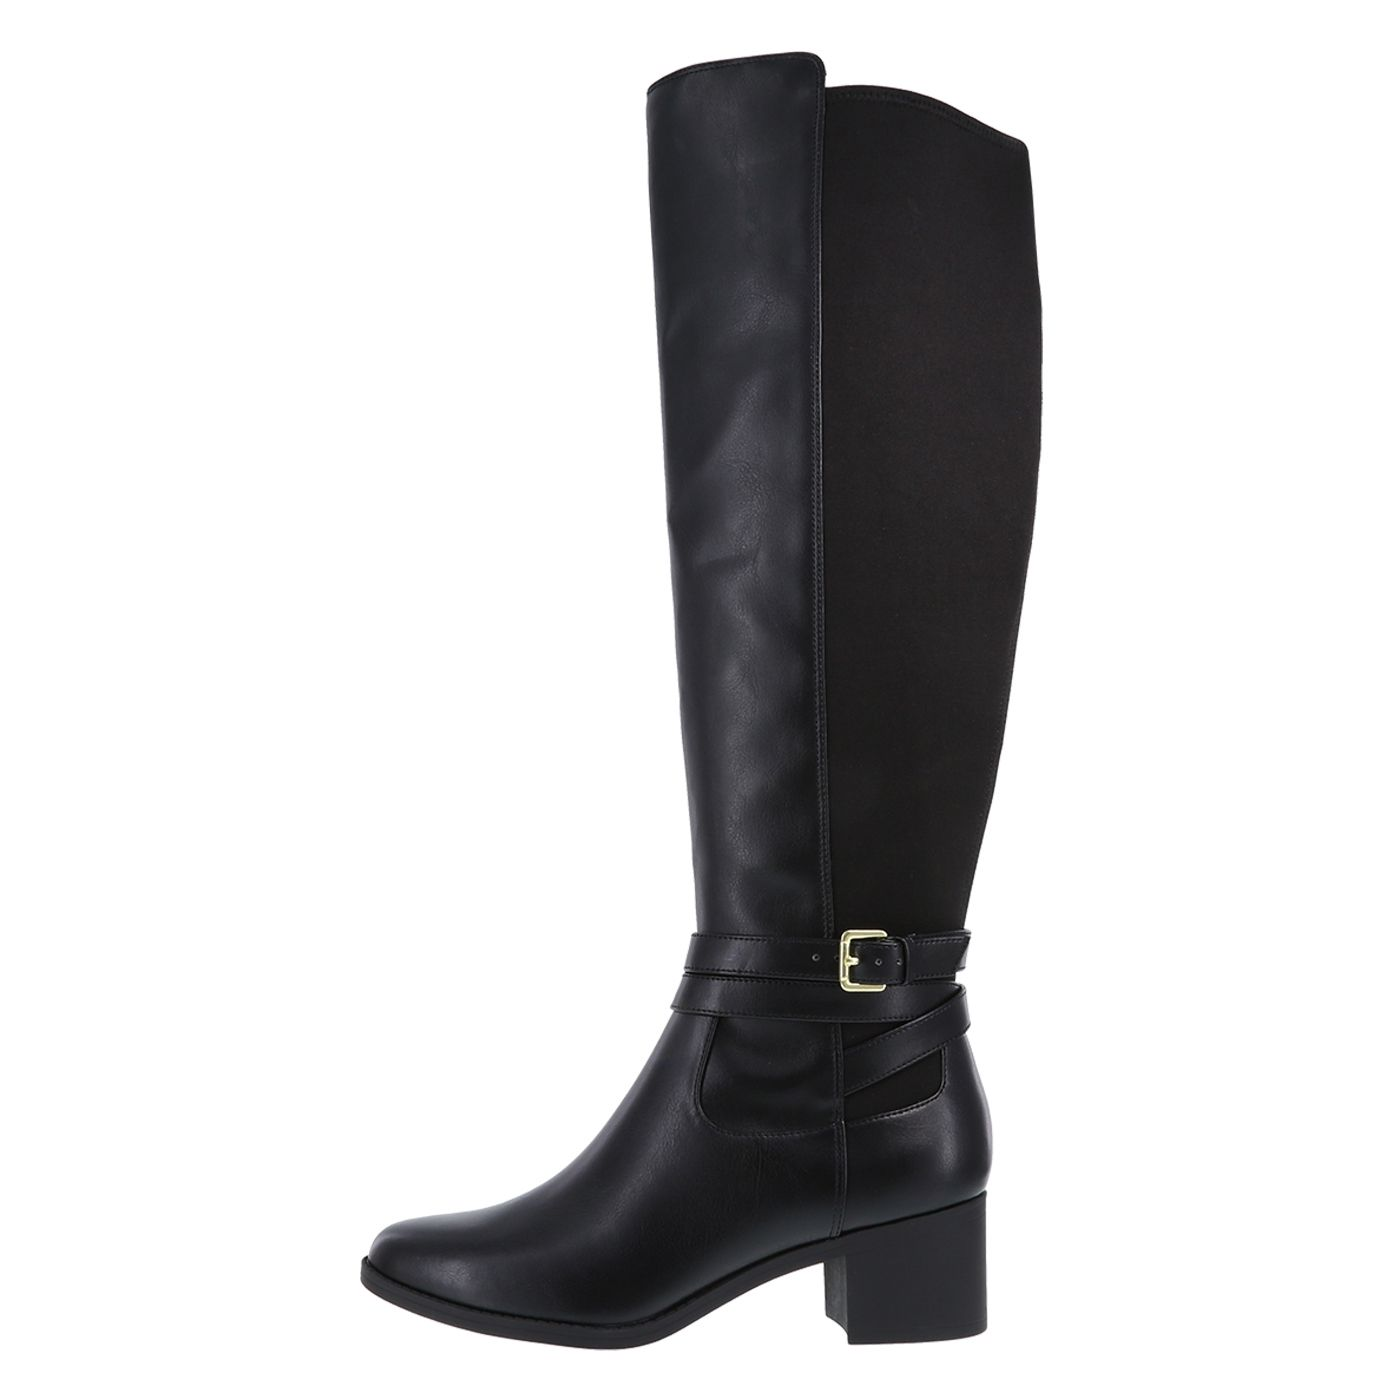 440201e95b5 Want to jazz up your fall boot collection? This stylish Fioni boot ...